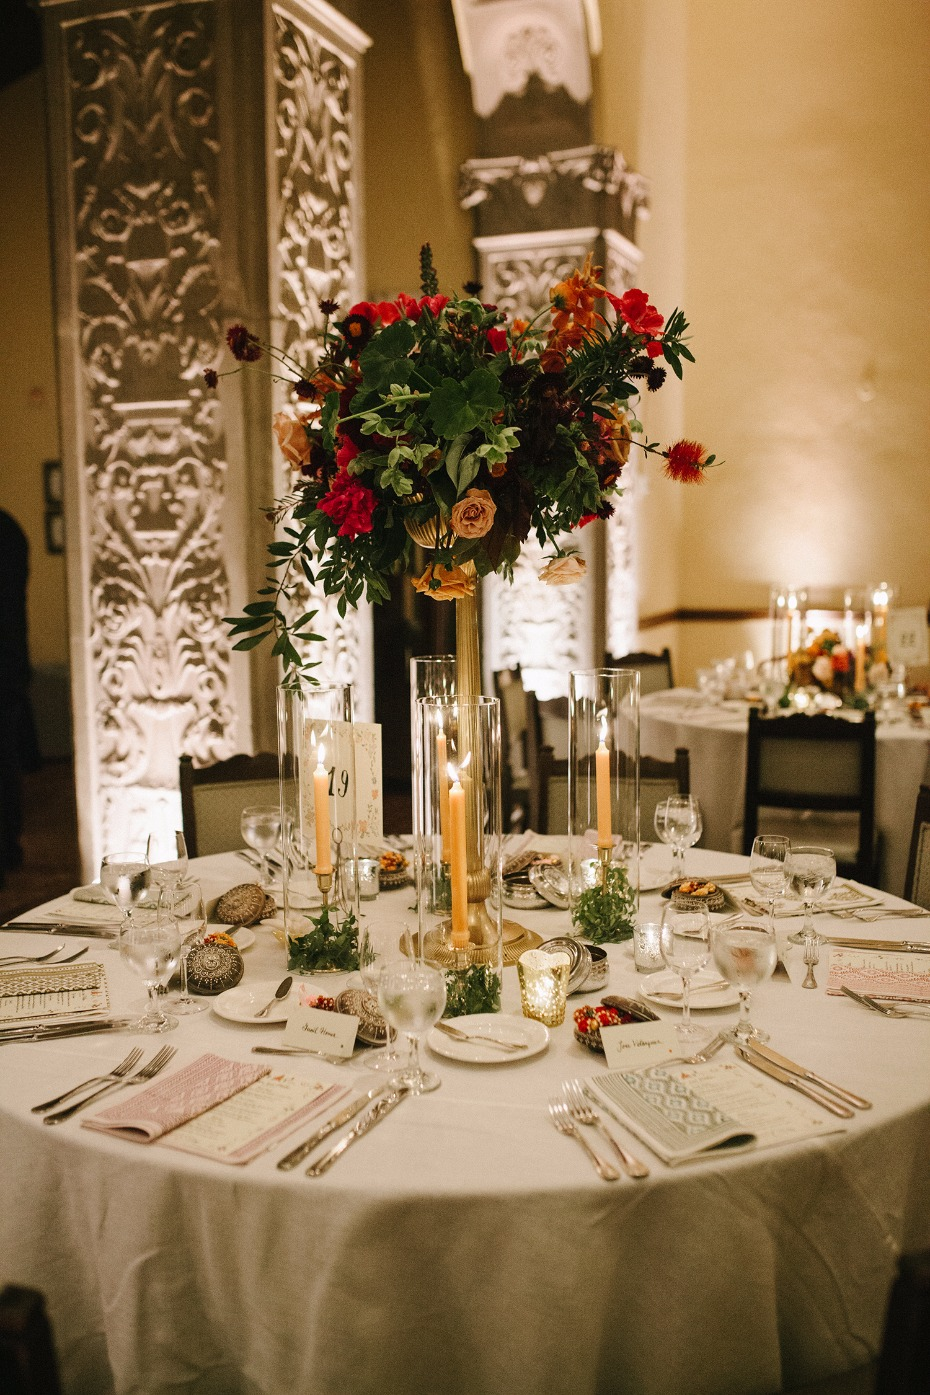 Tall floral centerpiece with candles